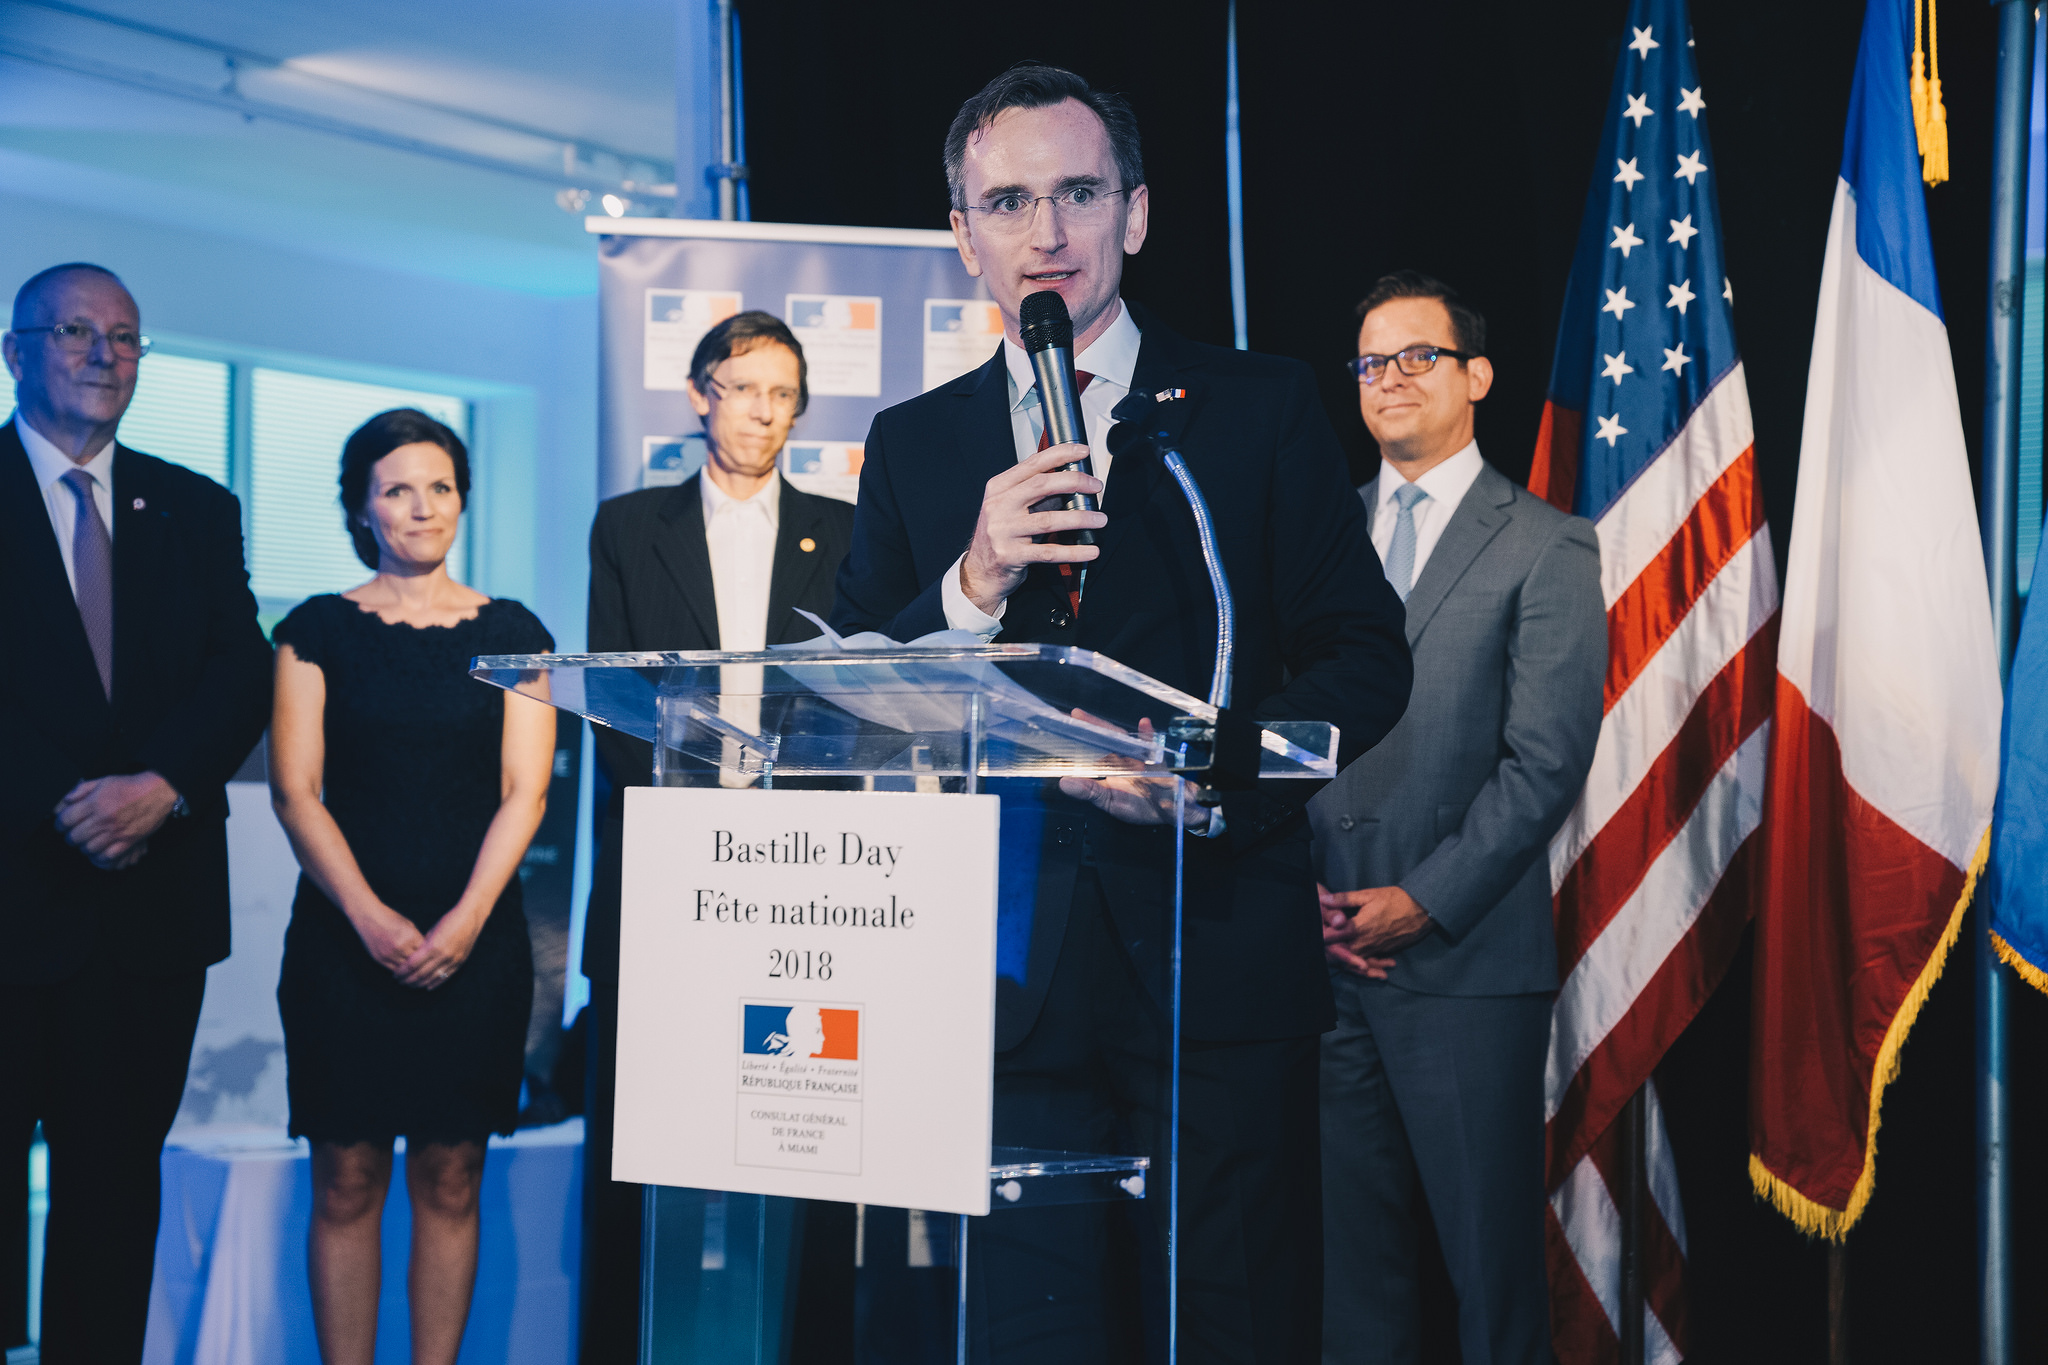 In Front: French Consul, Clément Leclerc | Left to Right: Xavier Capdevielle (conseiller consulaire), Mme. Erin Leclerc, Philip Stoddard (Mayor of South Miami),  Dean Trantalis (Mayor of Fort Lauderdale) and the Lieutenant-Gouverneur of Florida : Carlos López-Cantera